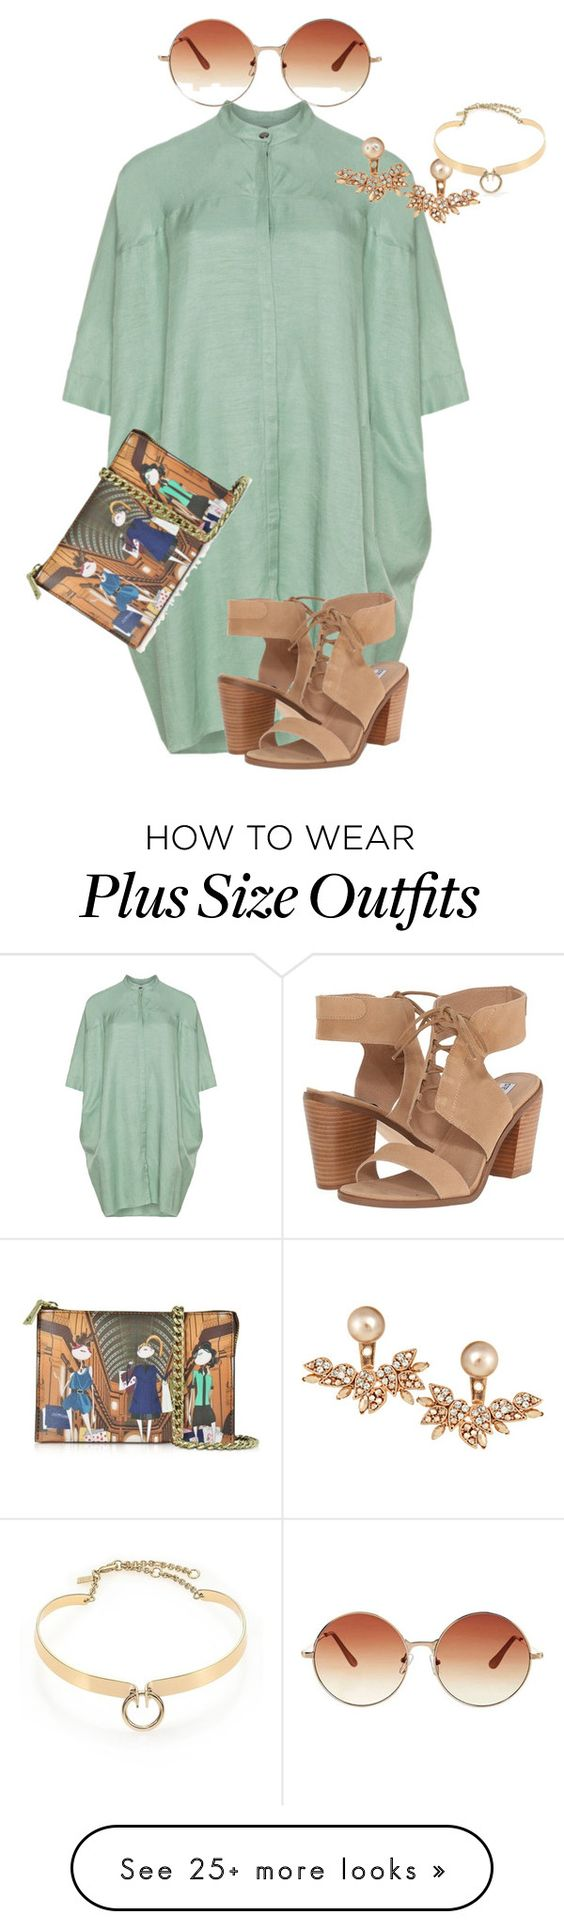 """""""plus size ultra summer chic"""" by kristie-payne on Polyvore featuring Steve Madden, Topshop, Love Moschino, Joanna Laura Constantine and Alexis Bittar"""